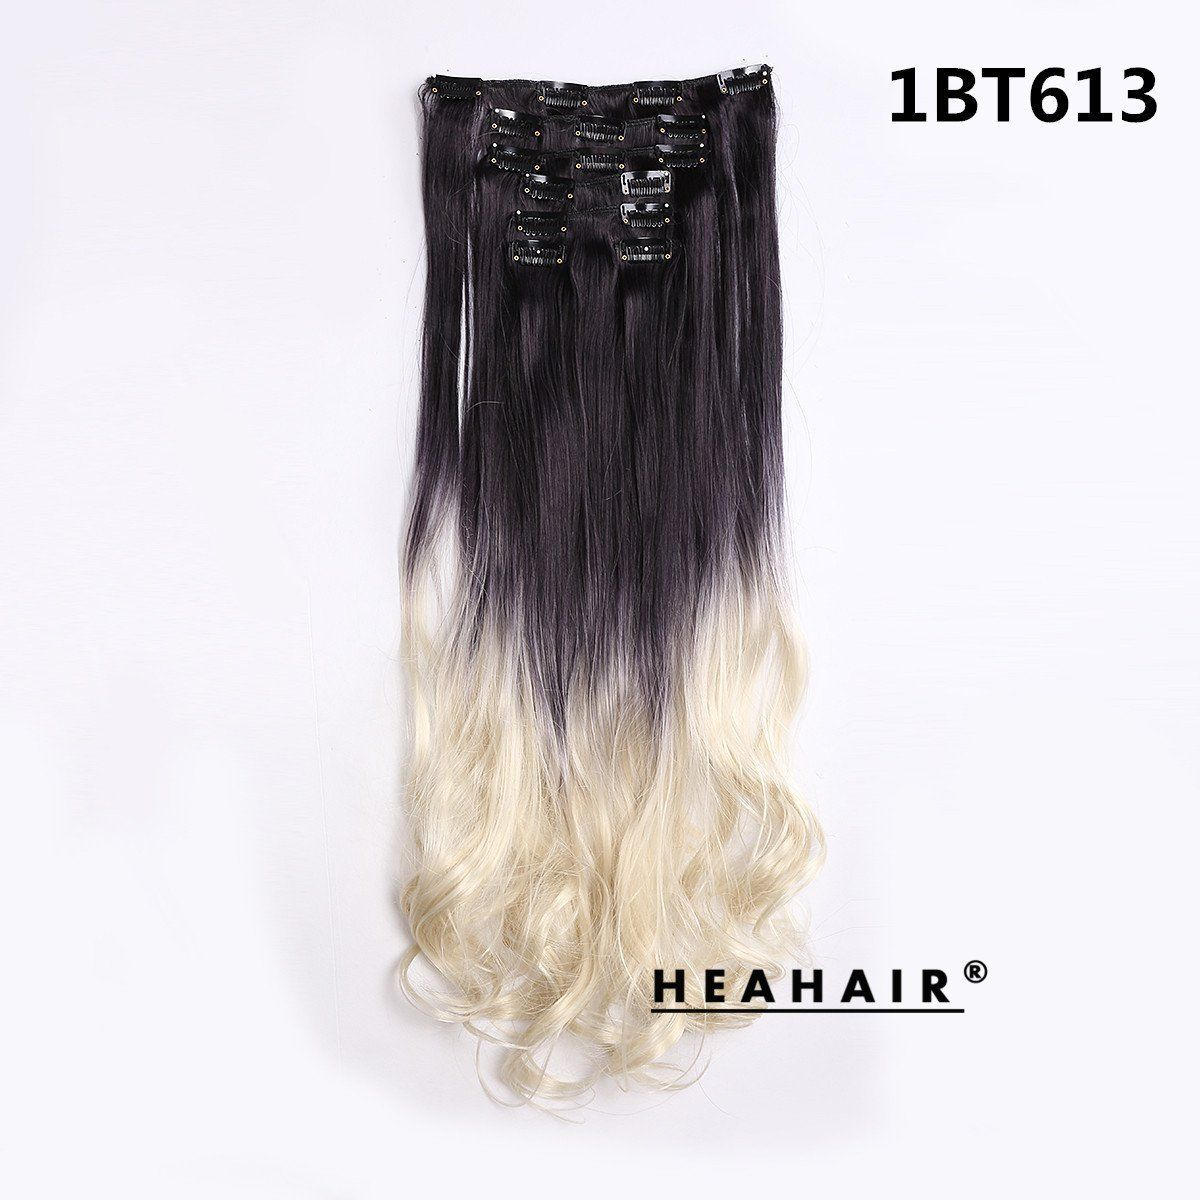 Heahair Full Head Ombre Black To White Blonde Synthetic Curly Clip